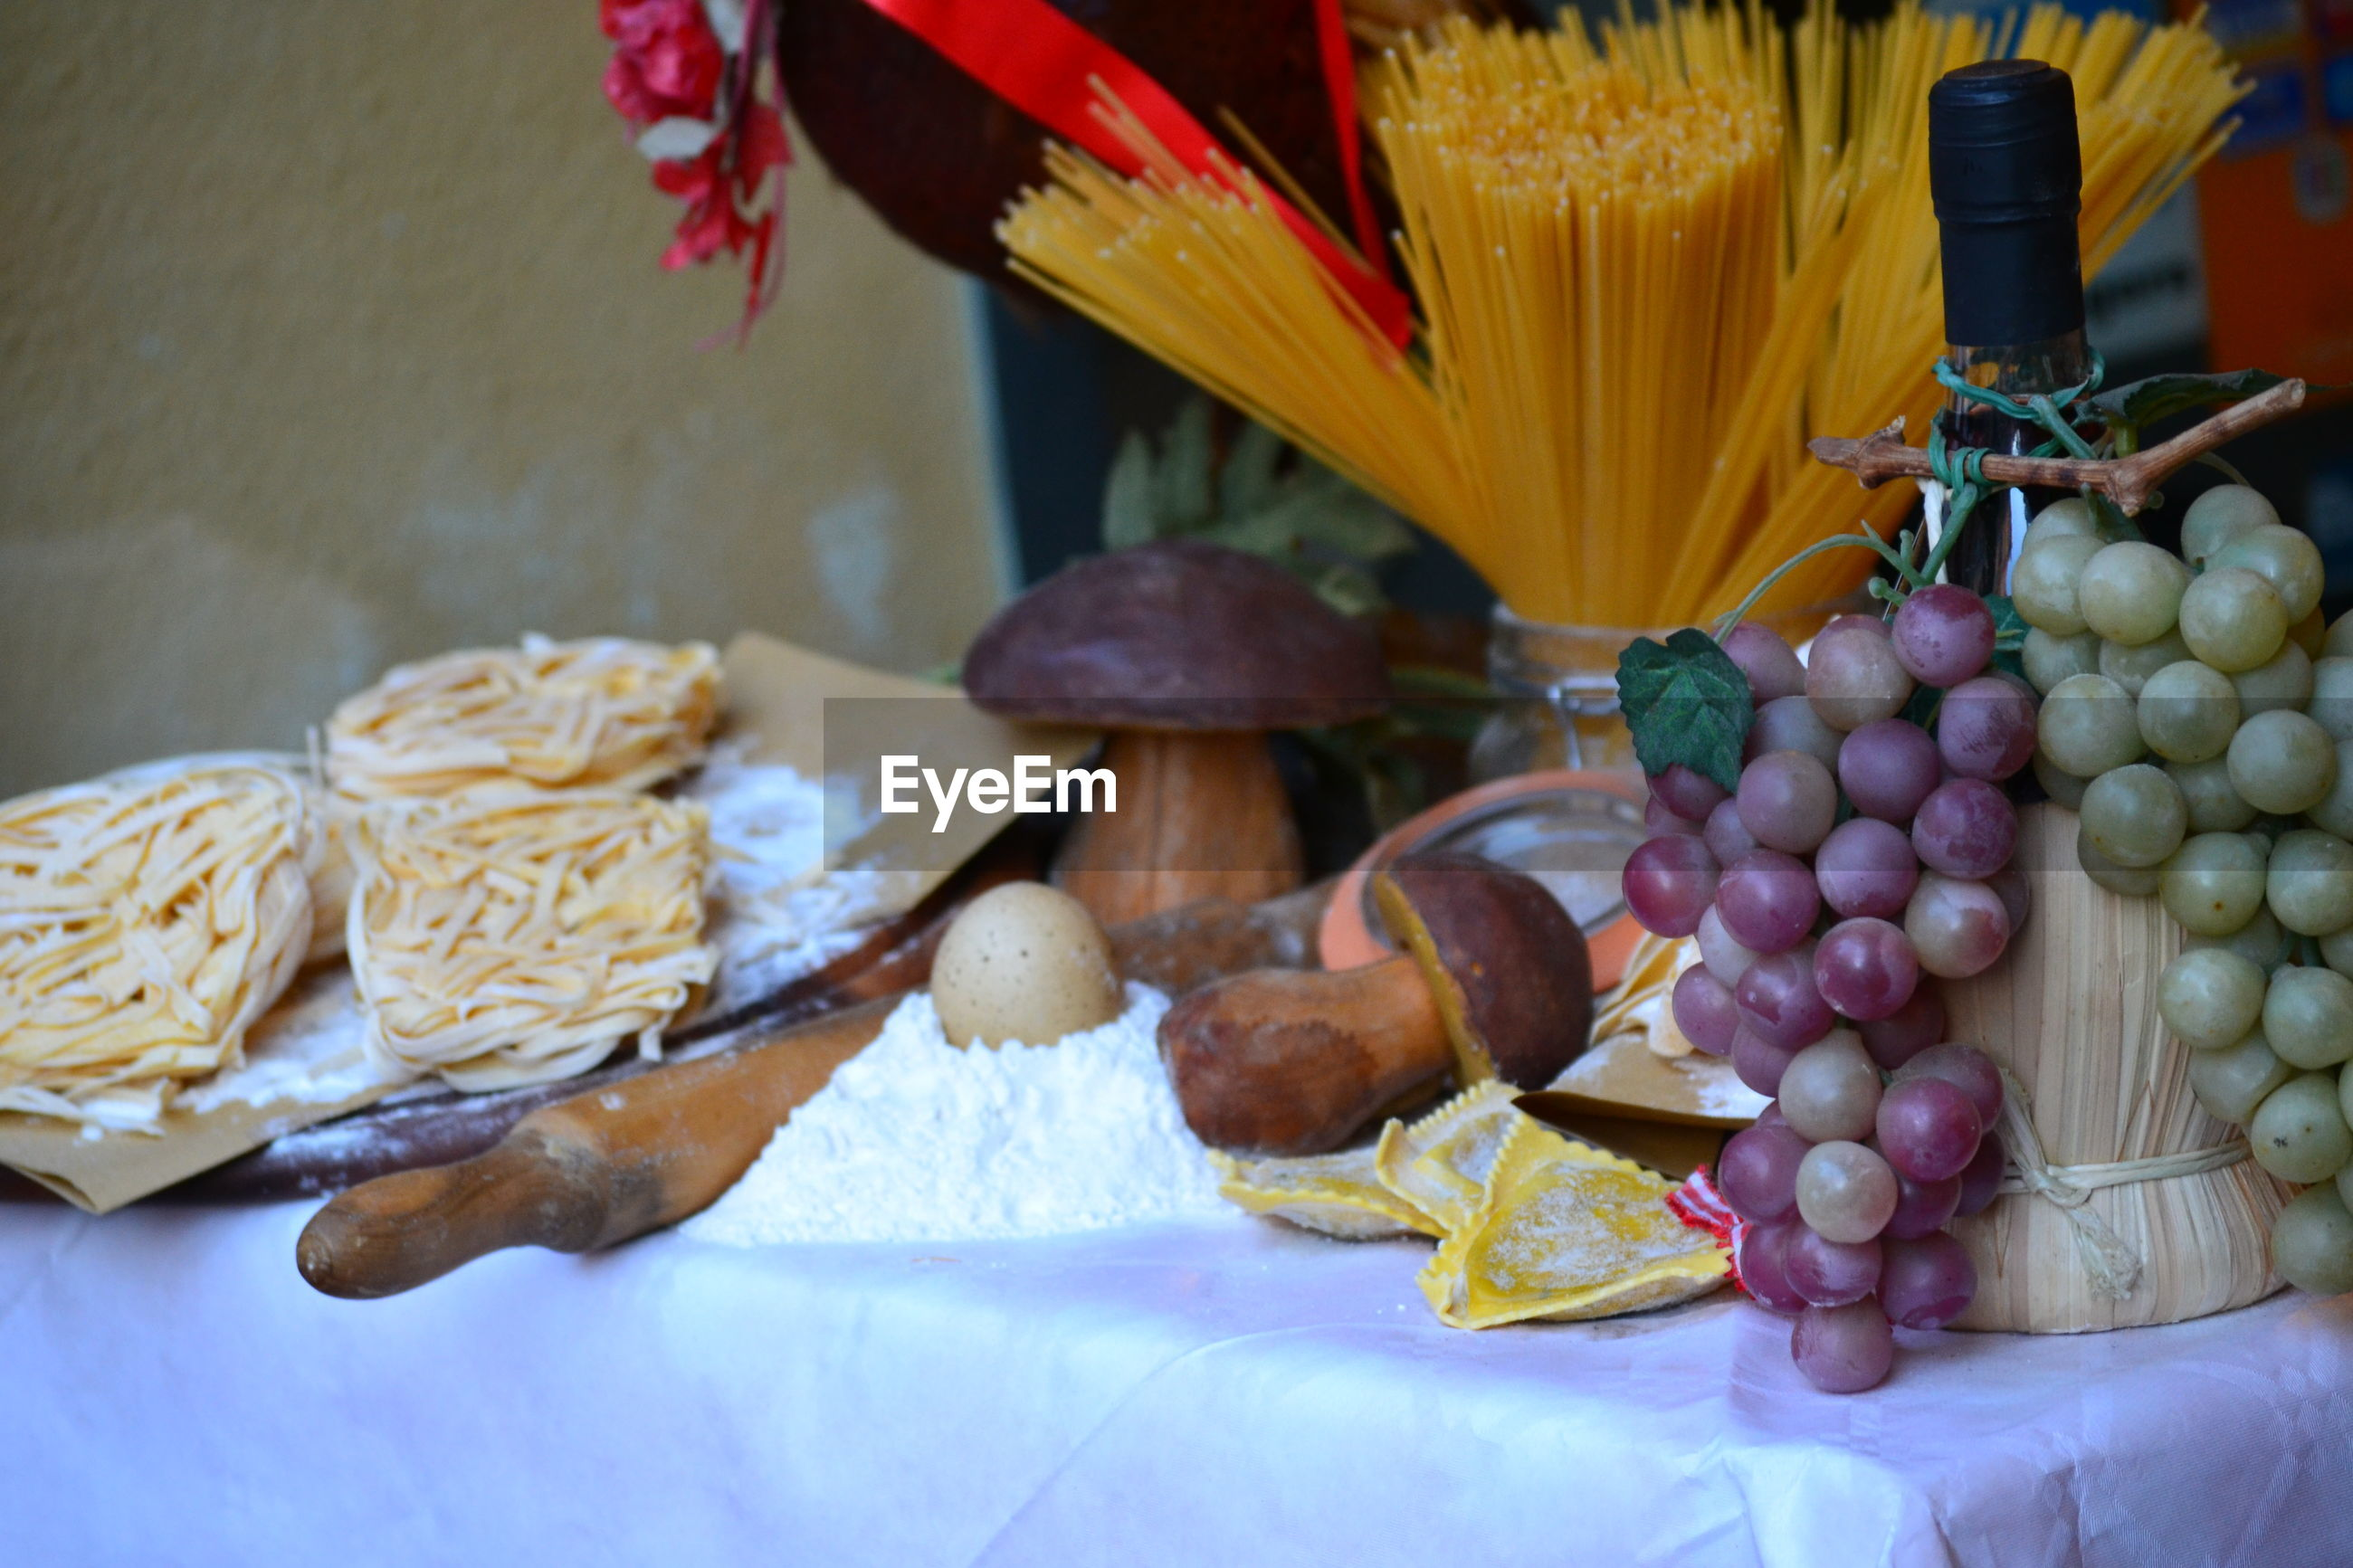 High angle view of fruits  and mushrooms on table